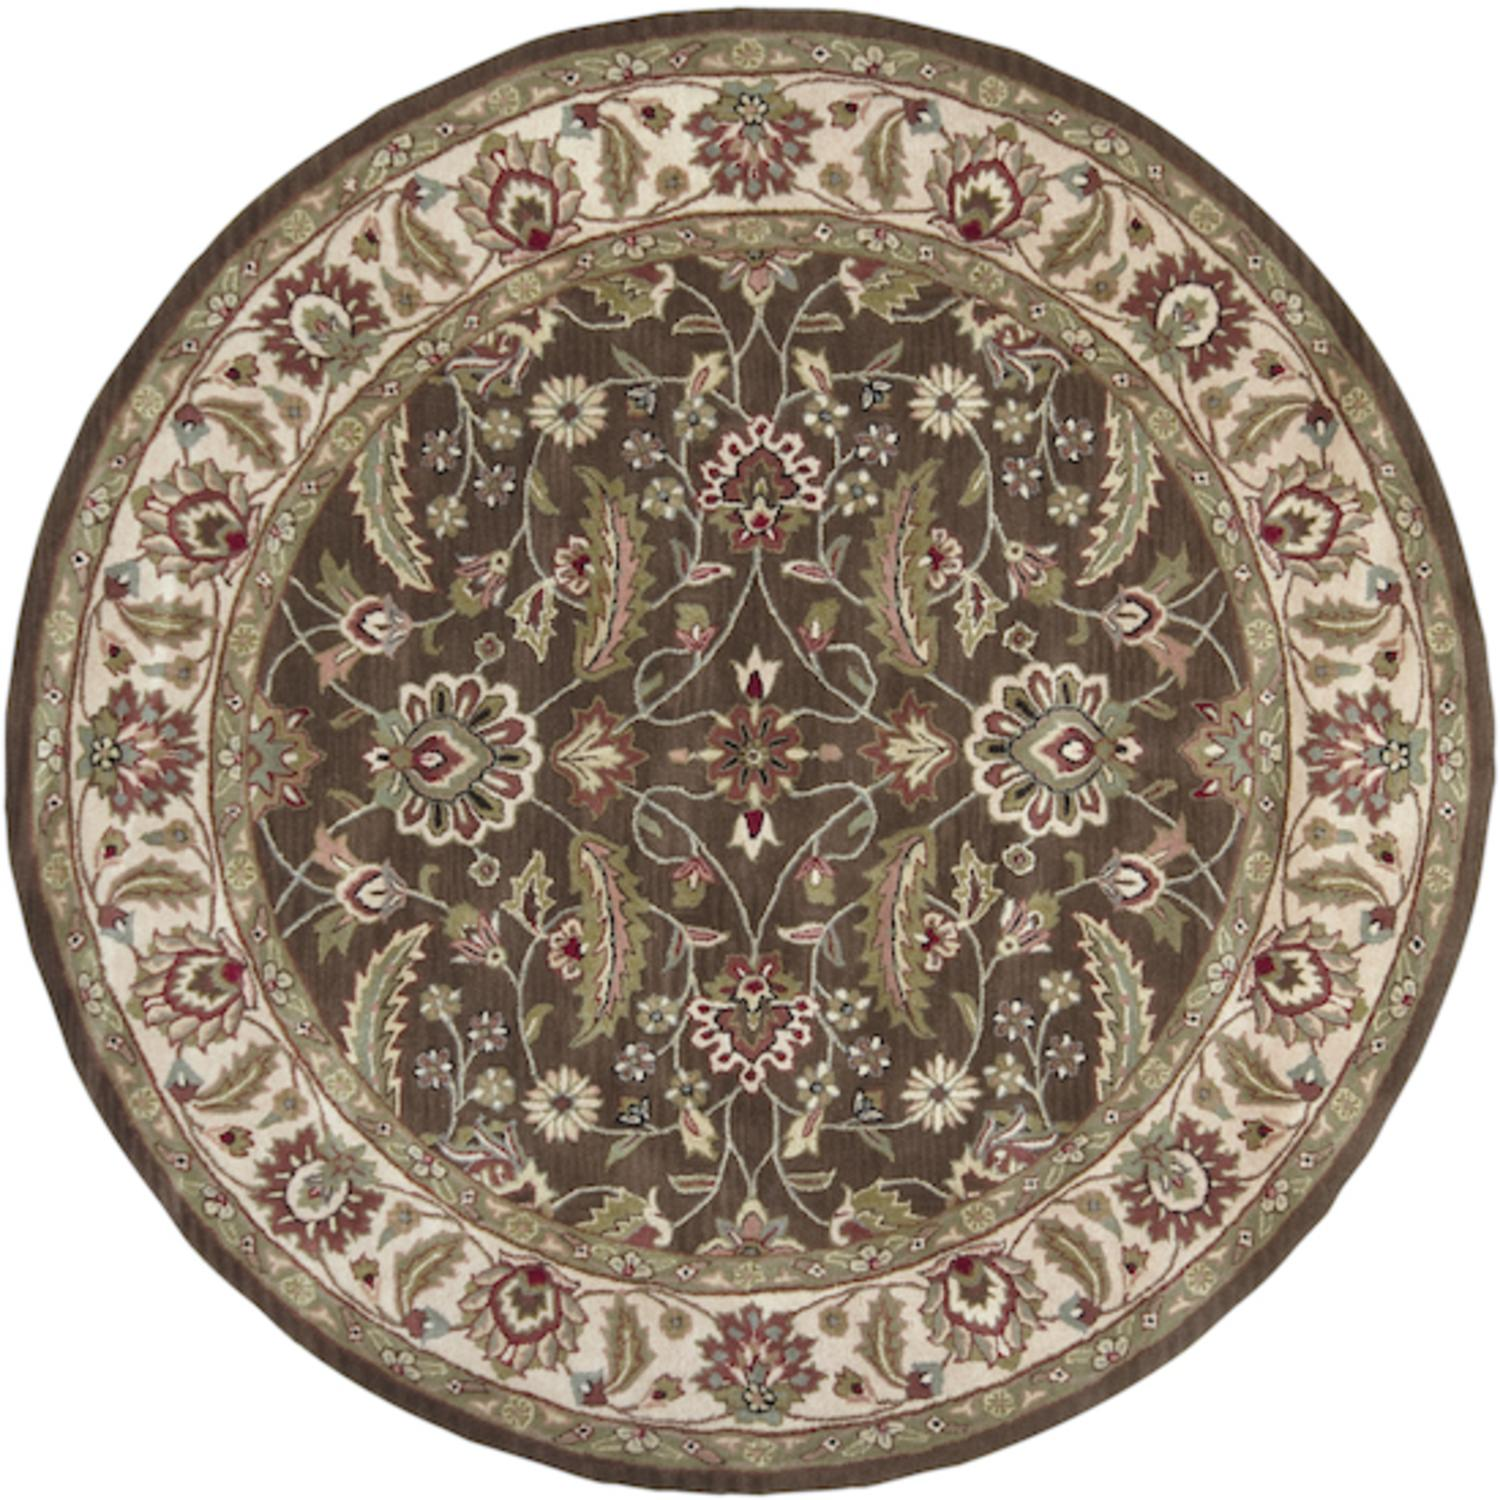 8' Tiberius Olive Green & Chocolate Brown Hand Tufted Round Wool Area Throw Rug